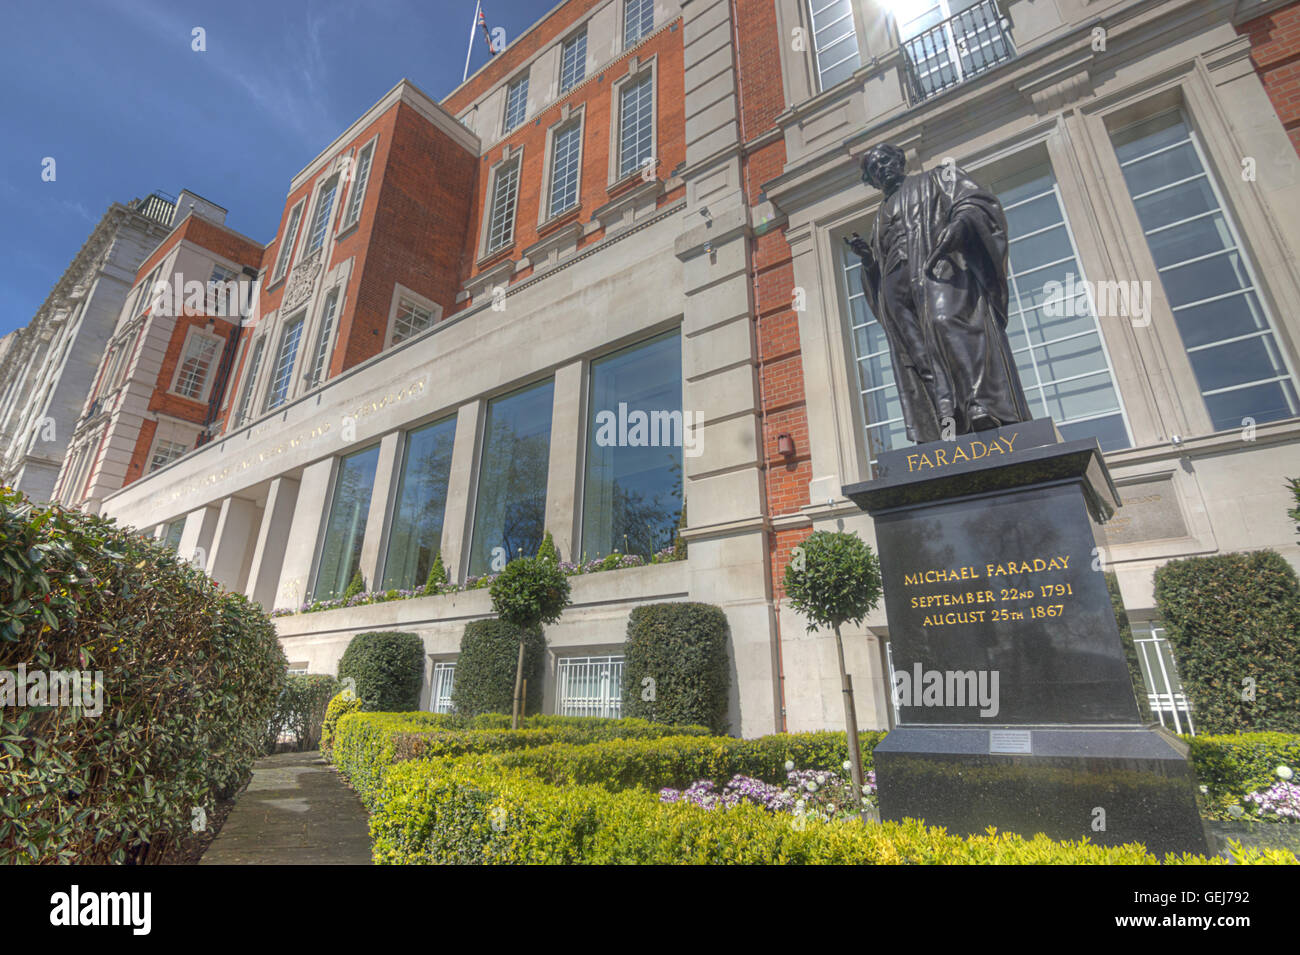 michael faraday institute of electrical engineers london - Stock Image